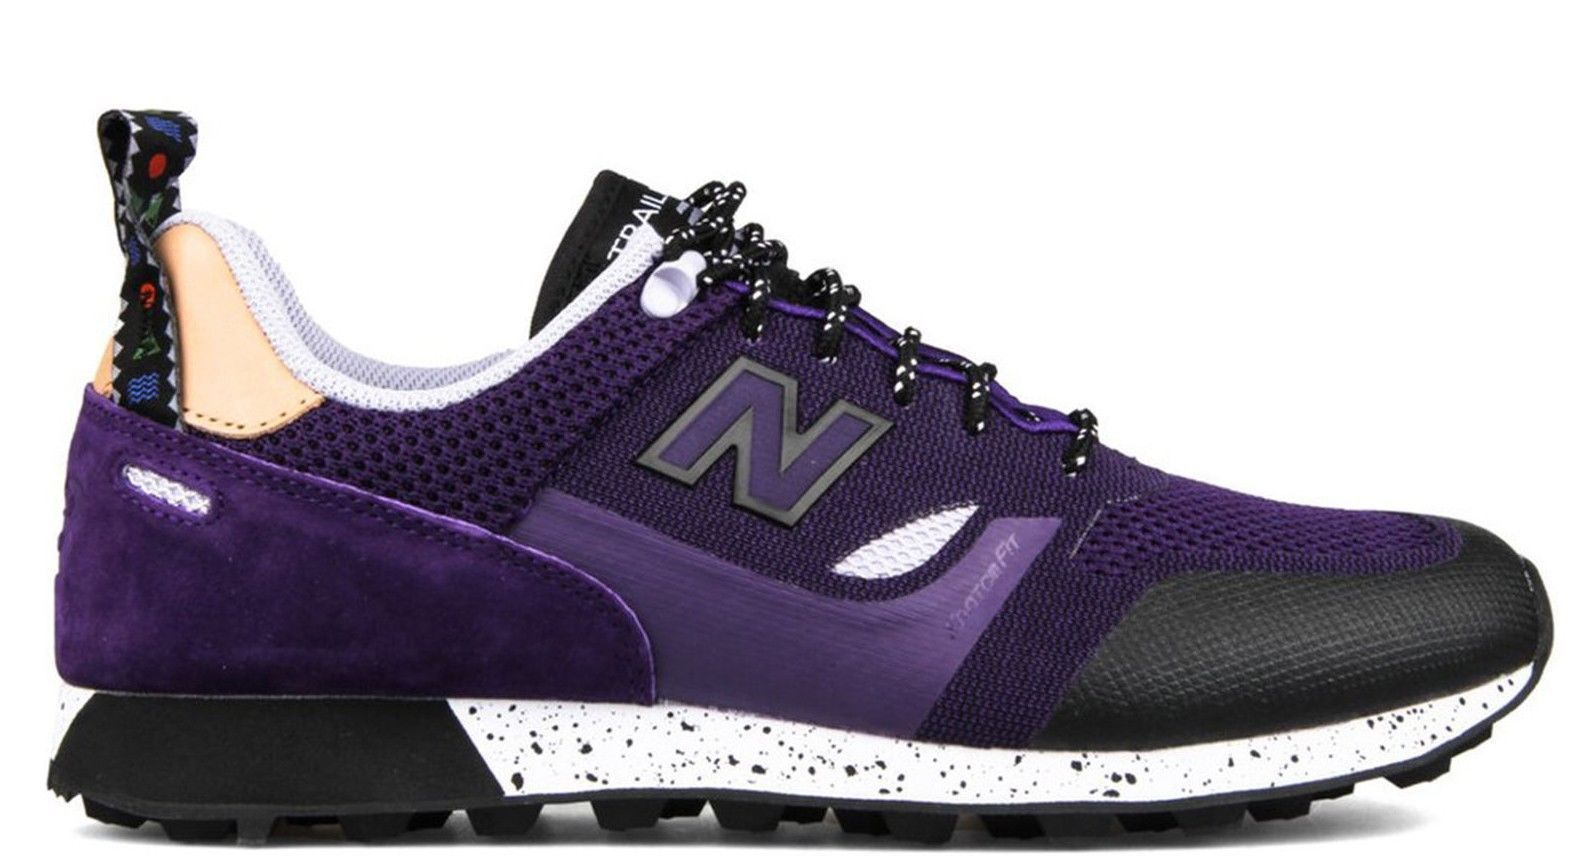 2a2a48c9bbed9 New Balance Men s Mode De Vie Trailbuster and 50 similar items. 57